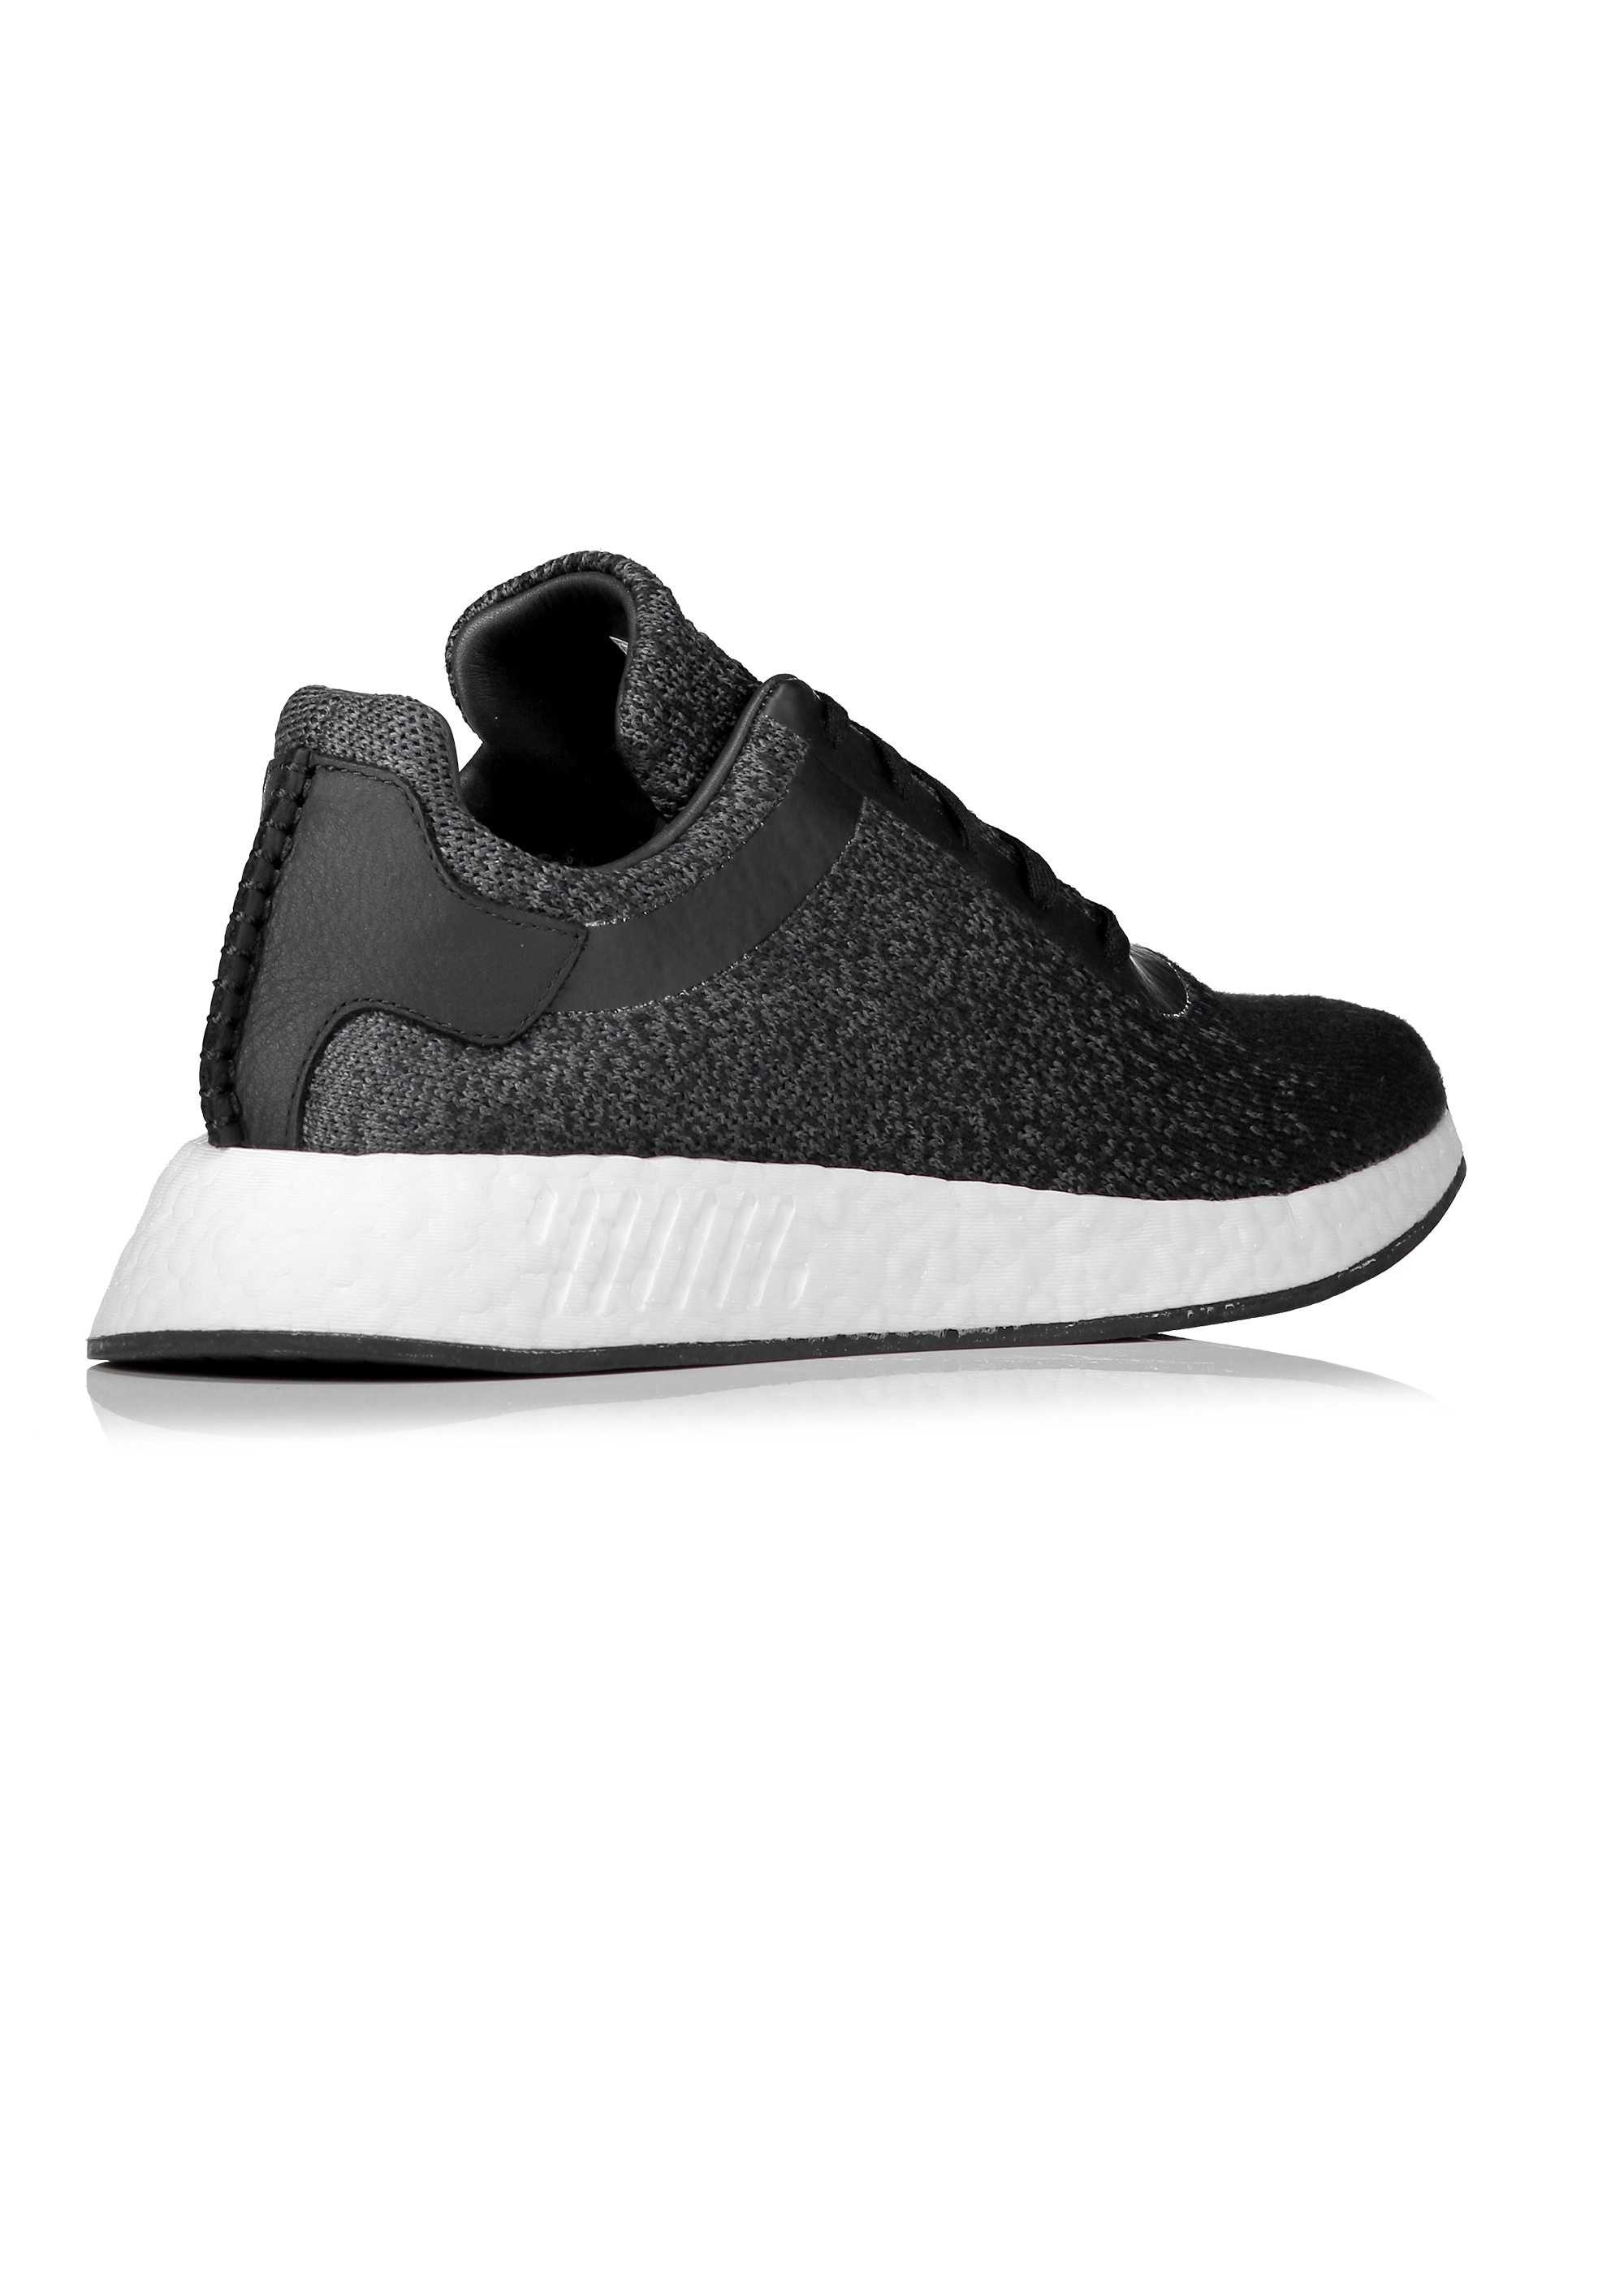 lowest price 0e1a2 d451f adidas by Wings+Horns NMD R2 PK - Black